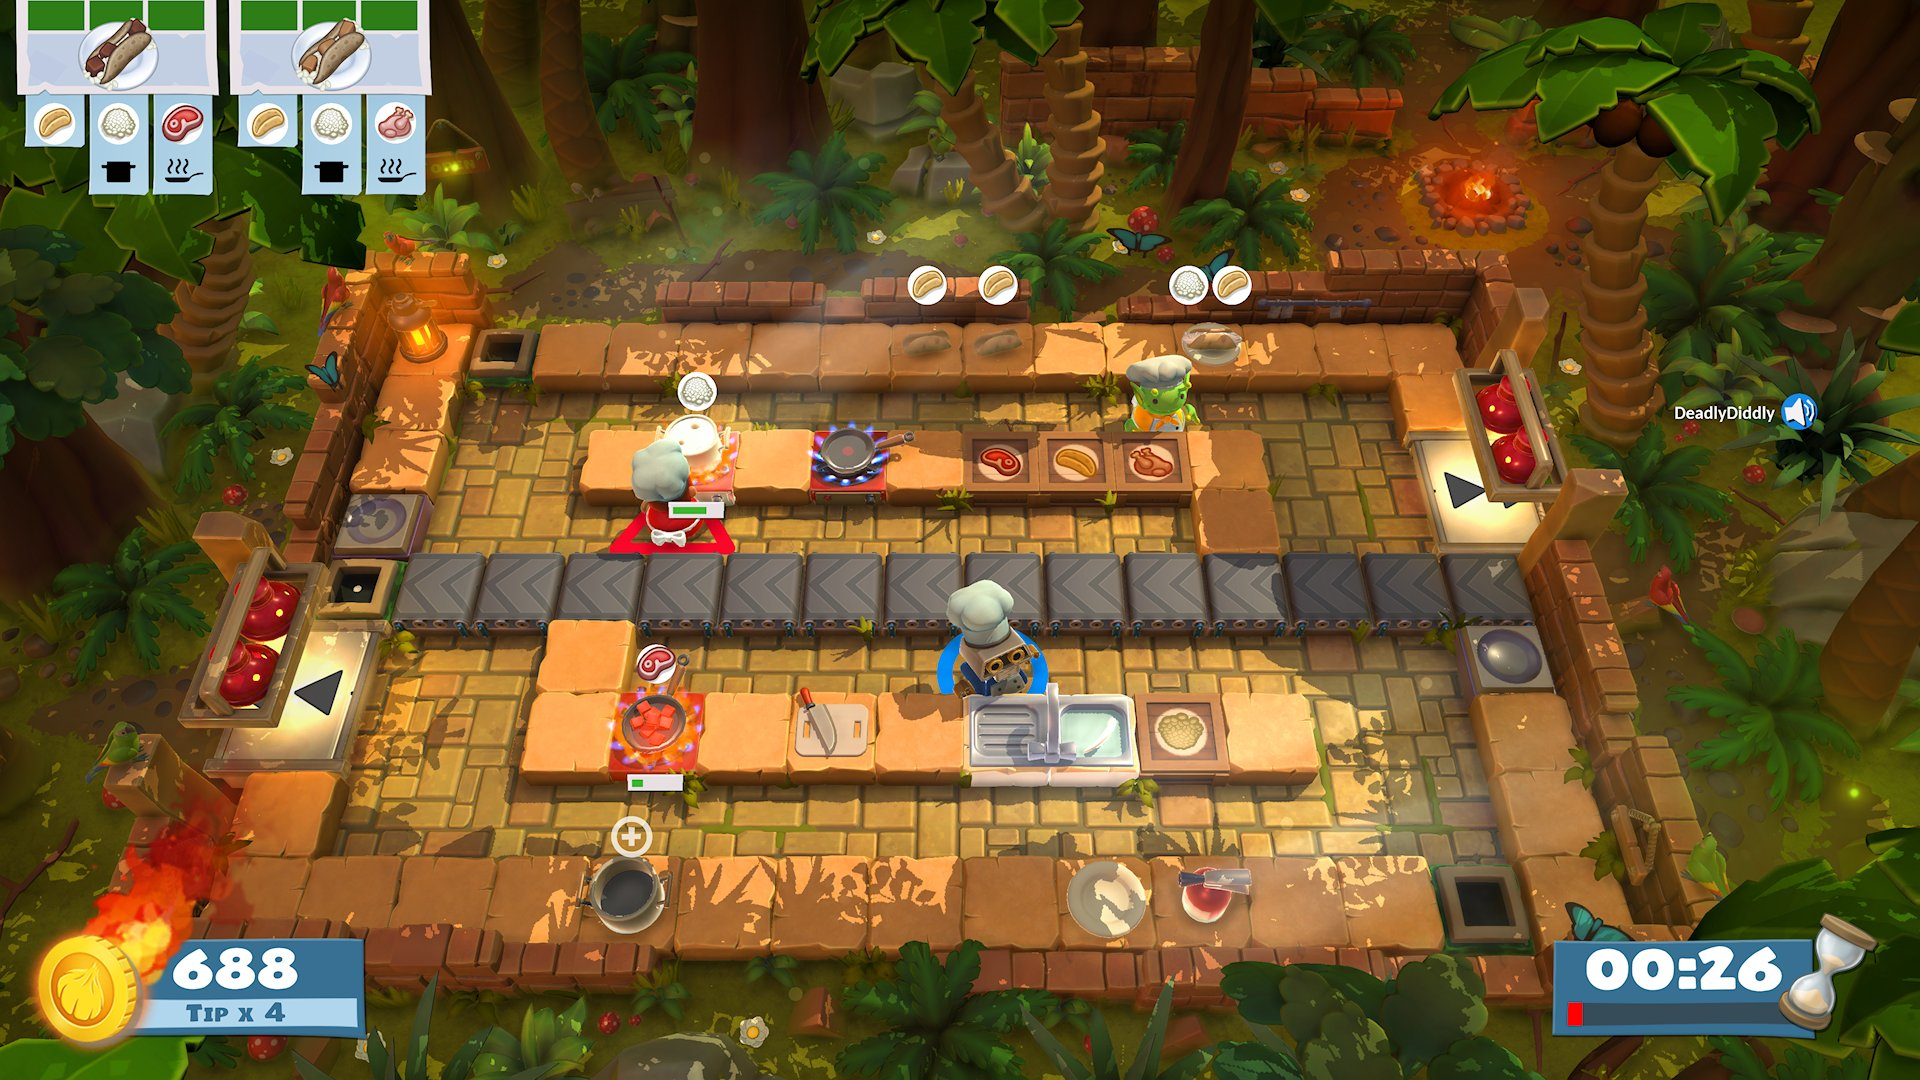 A jungle kitchen from Overcooked! with a conveyor belt running through the middle, and carnage ensuing on either side.